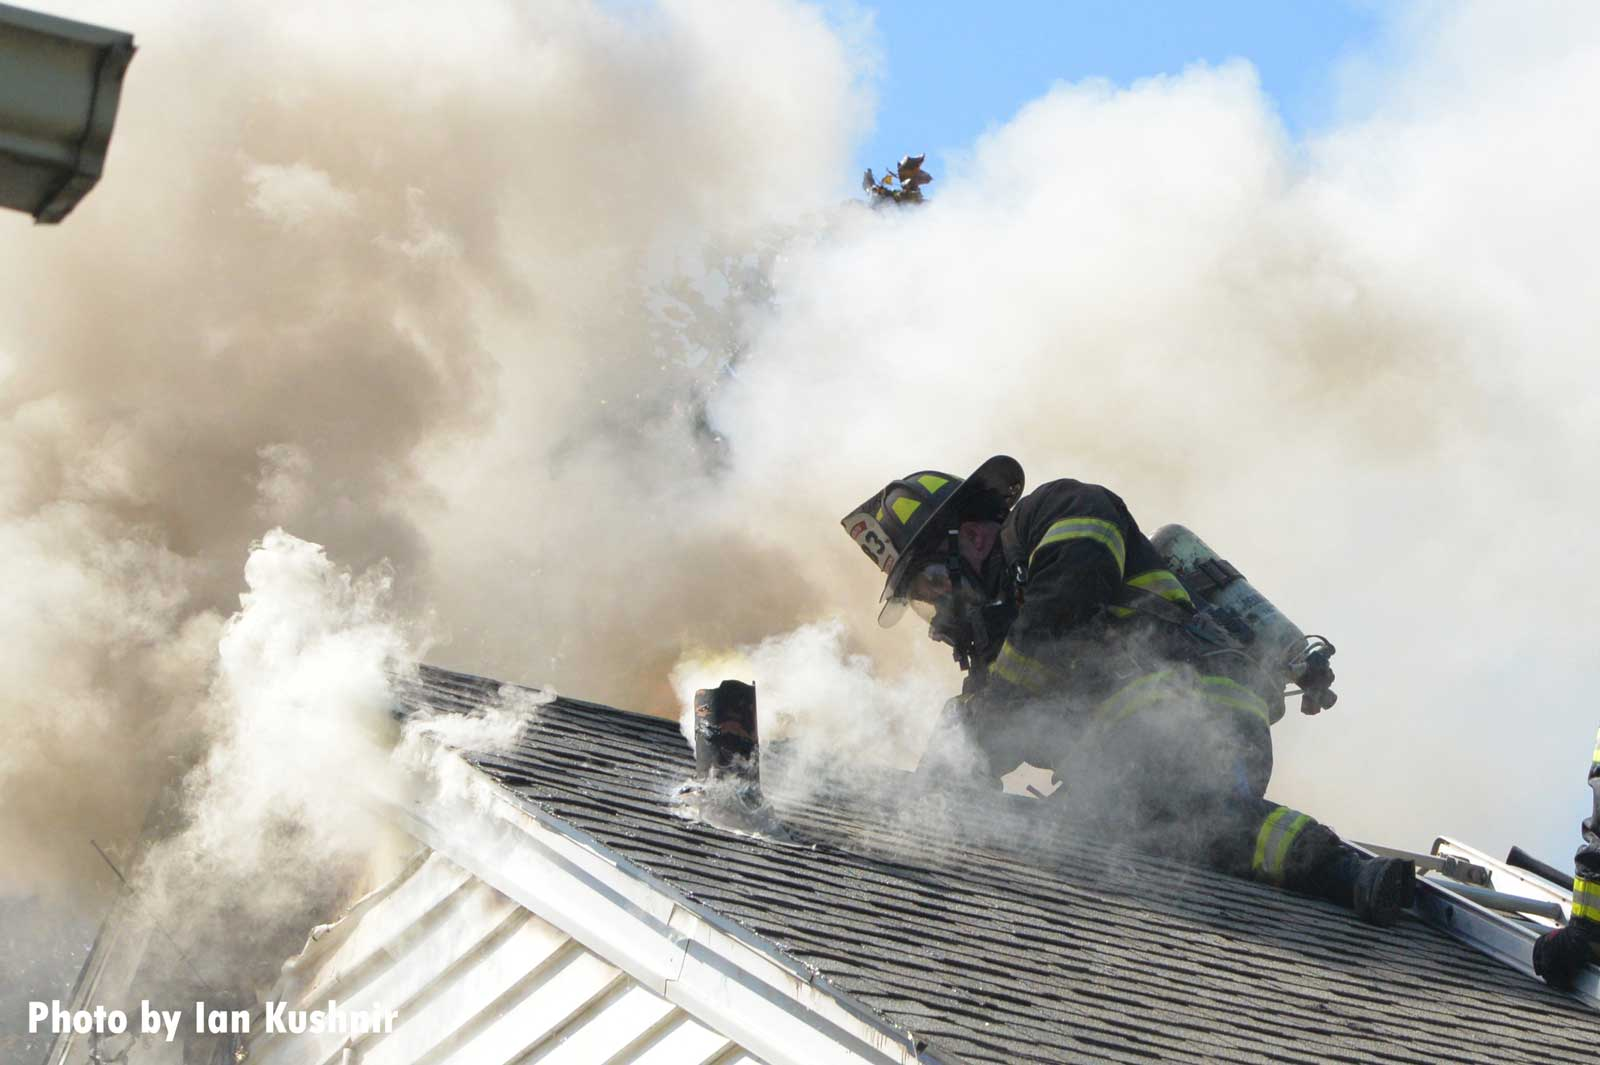 Firefighter on the roof of a home with smoke billowing about him